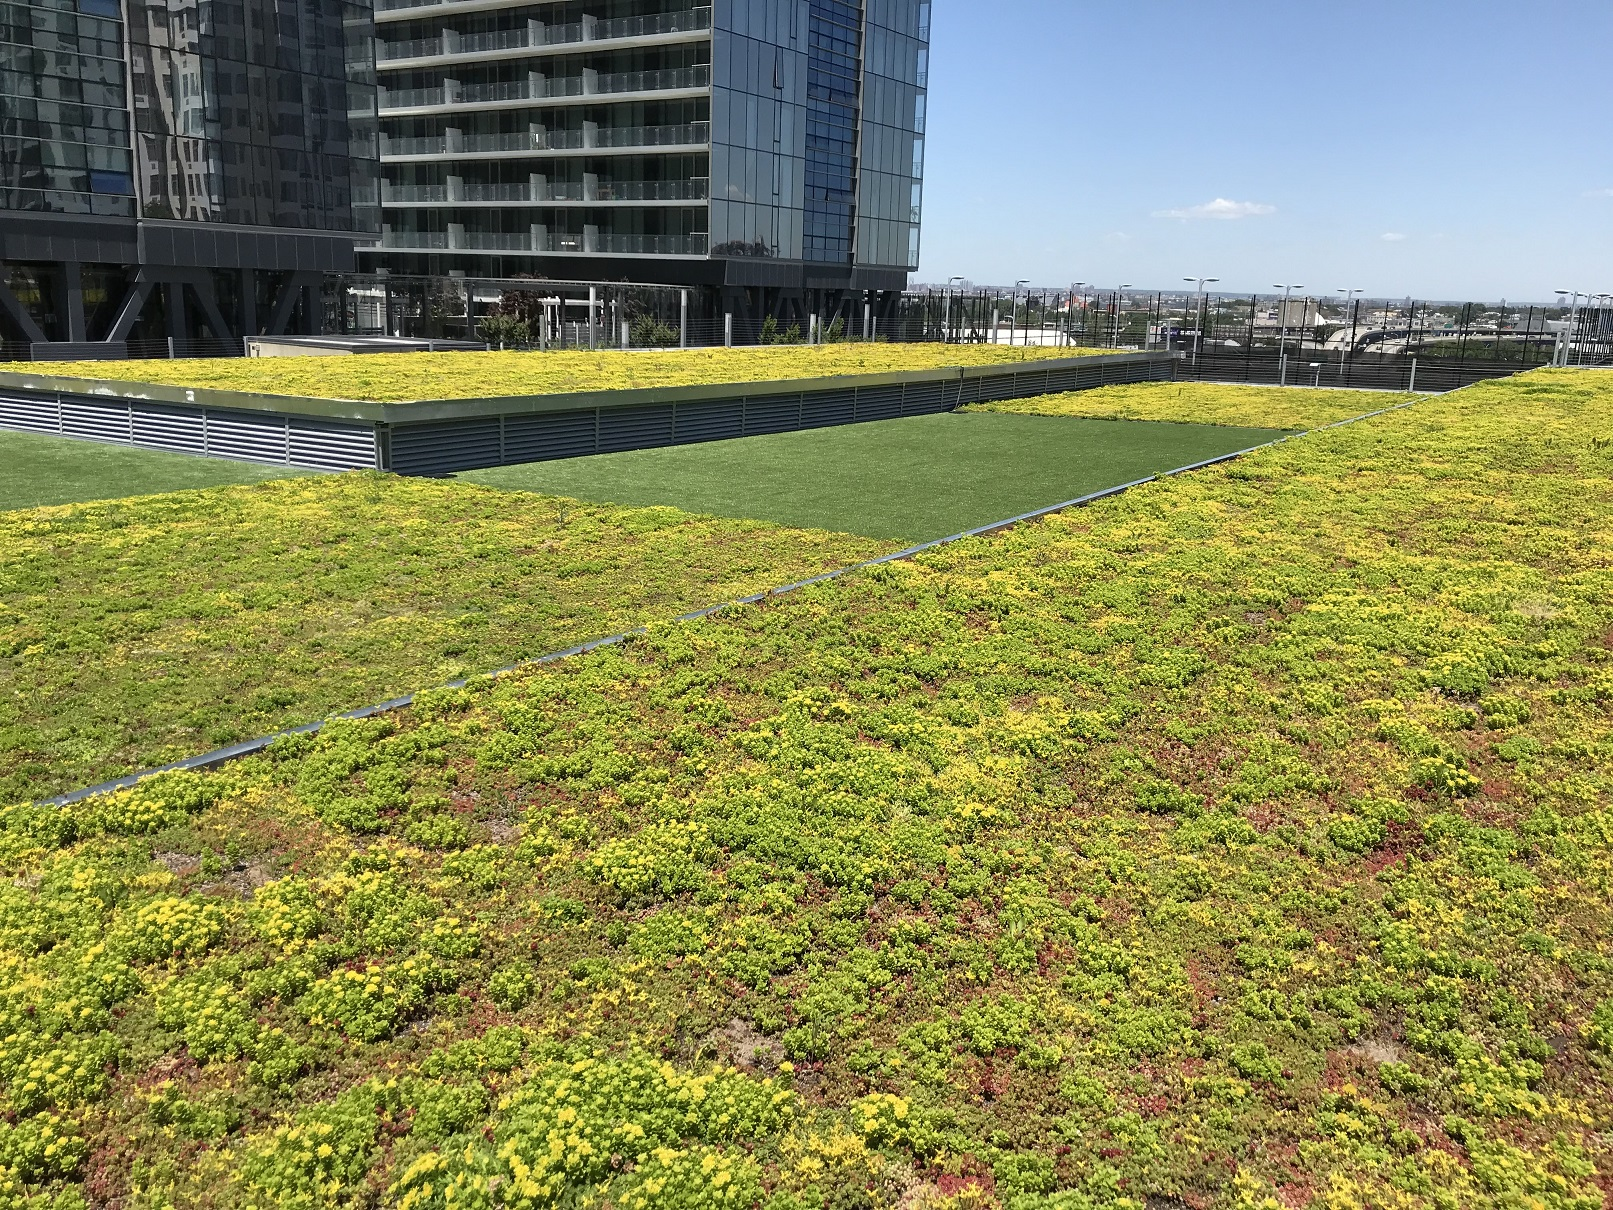 On top of the parking garage a multi-leveled green roof is created